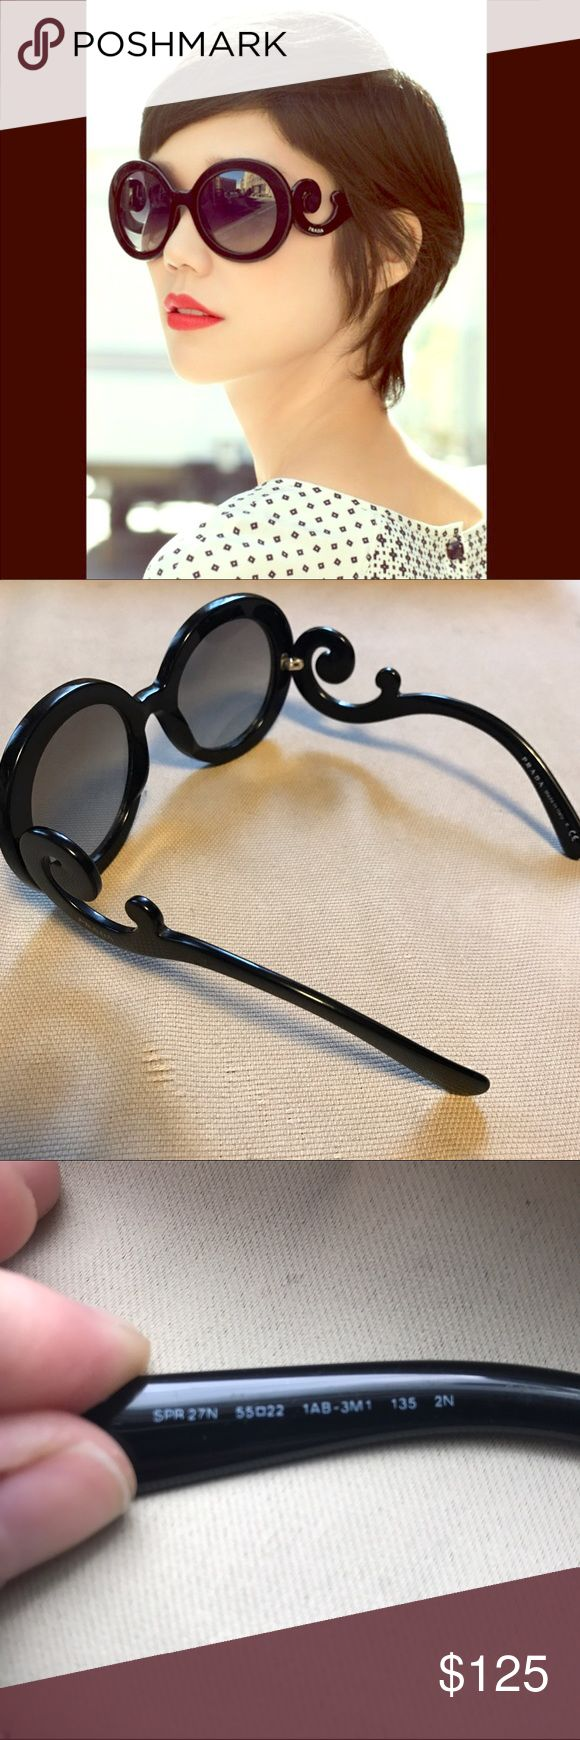 "Prada Baroque Sunglasses Here are some extra pictures of these gorgeous, gently used Prada ""Baroque"" sunglasses. Please see original listing to make an offer! ❤ Prada Accessories Sunglasses"